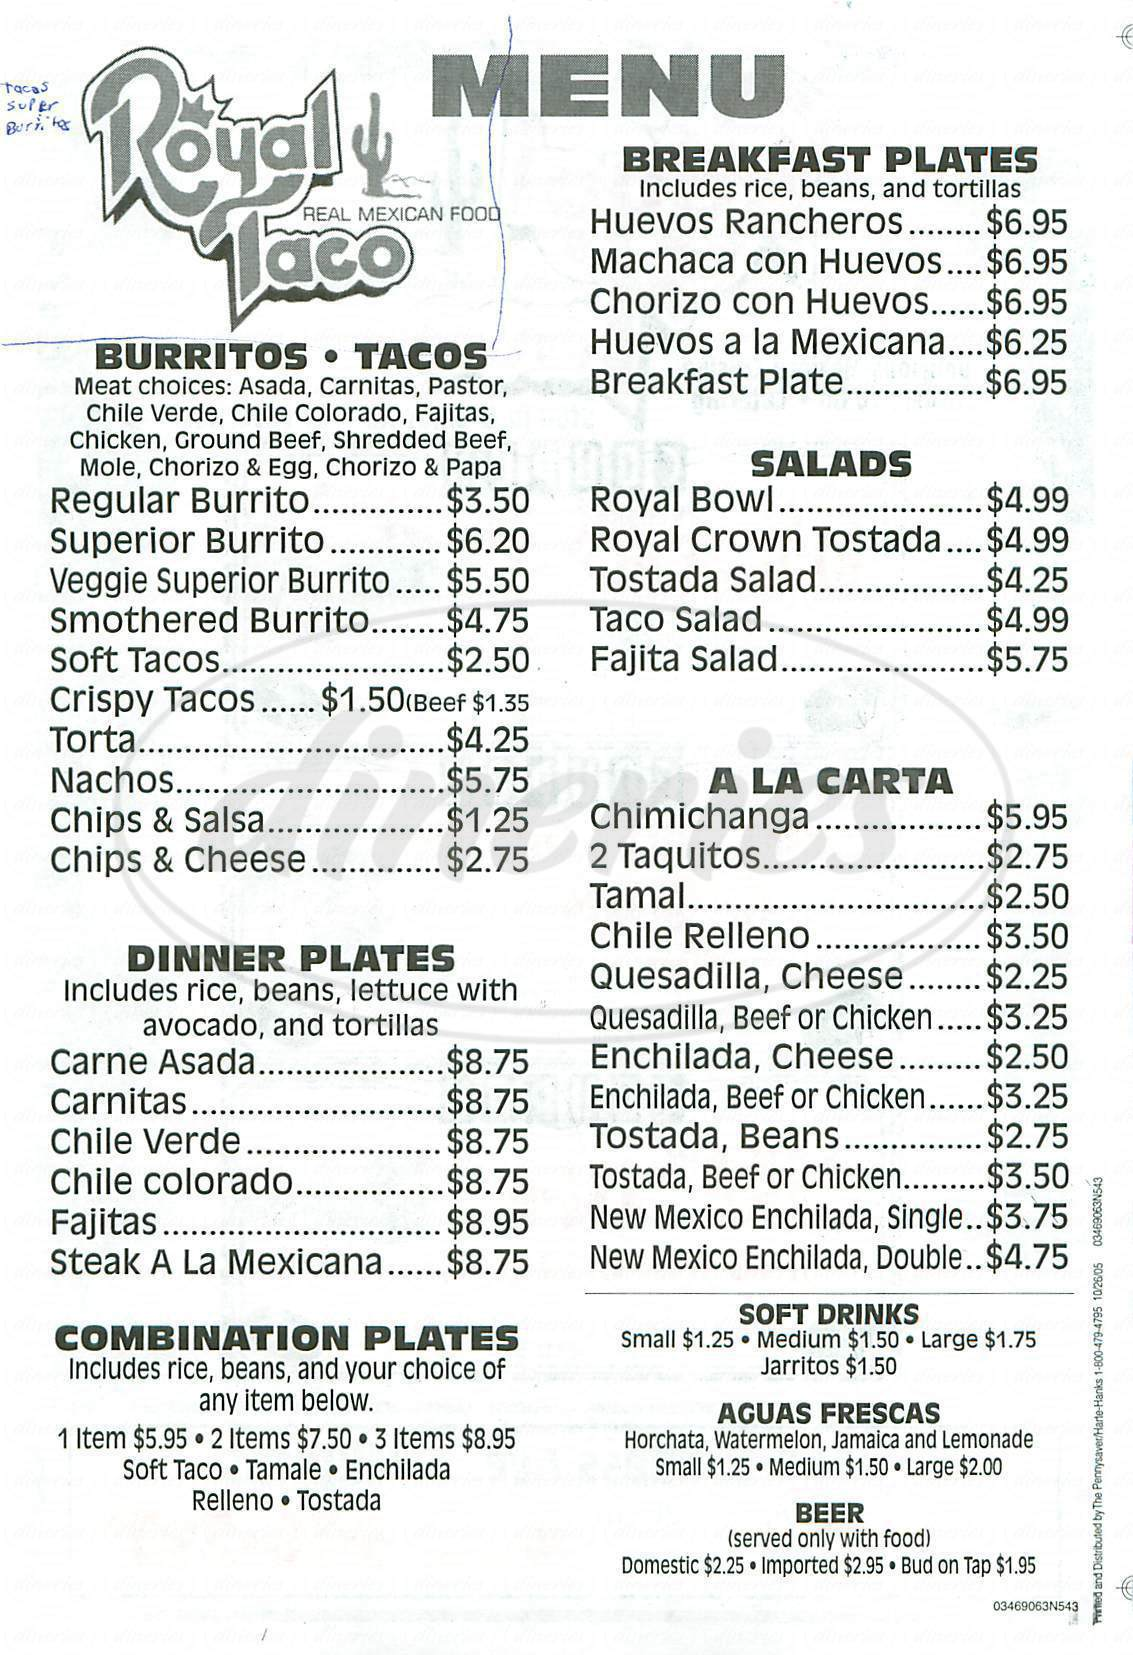 menu for Royal Taco Mexican Food